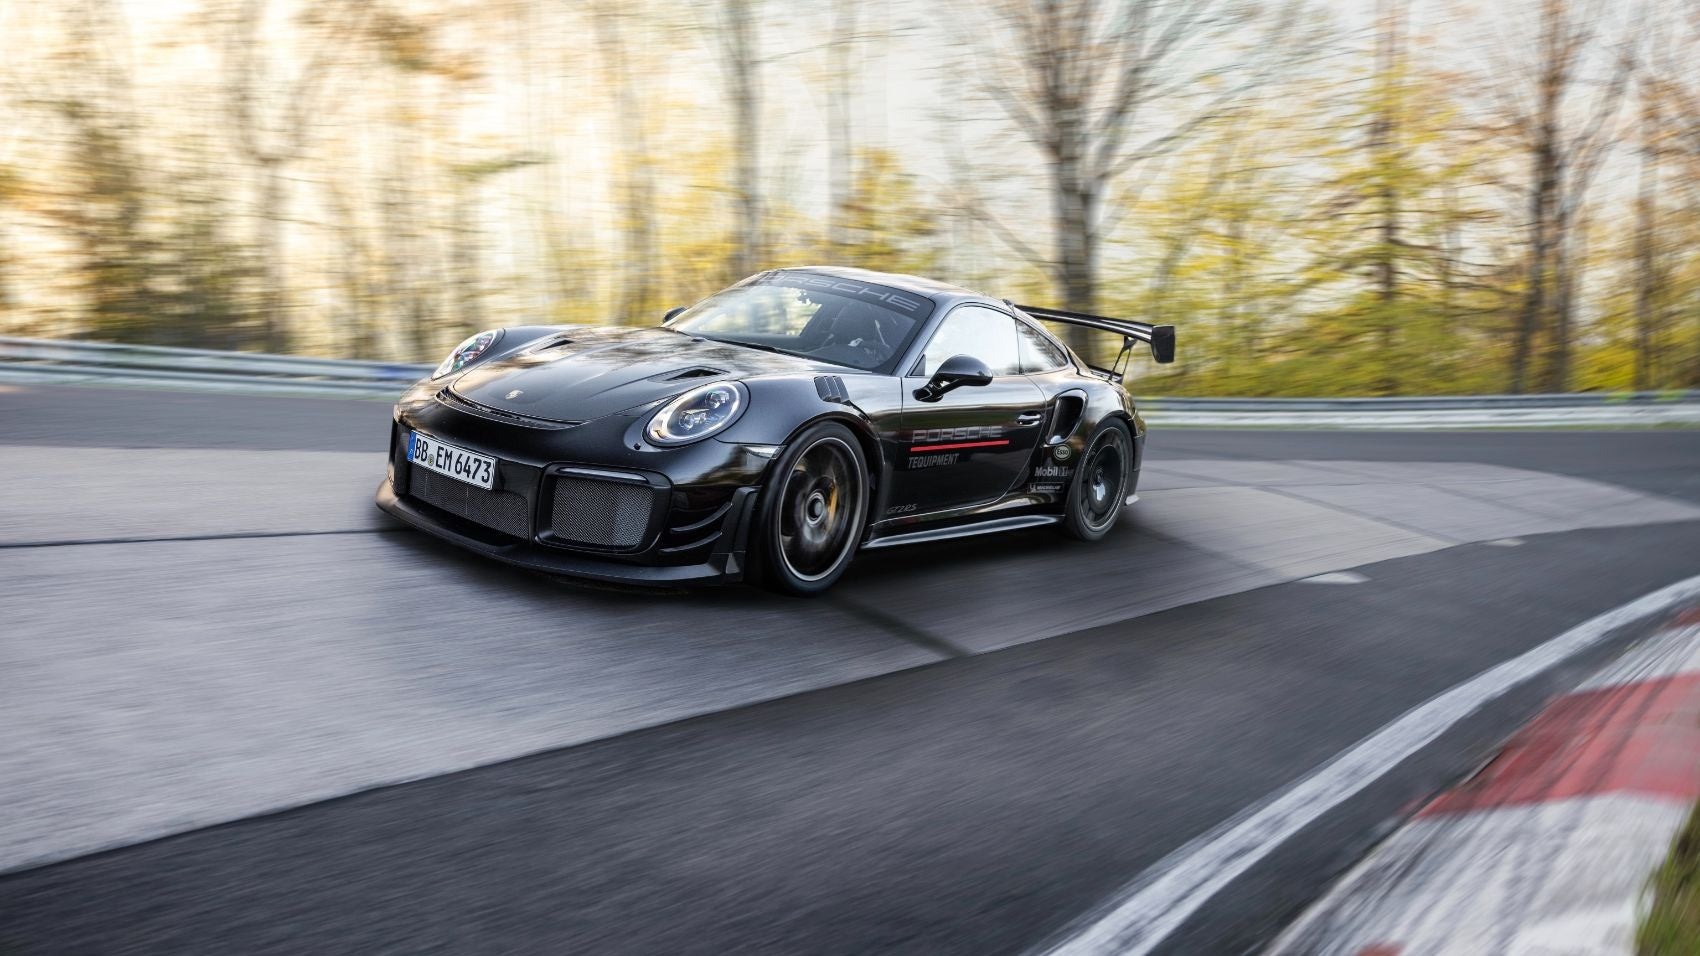 Top 5 Fastest Production Cars Around The Nürburgring (2021)